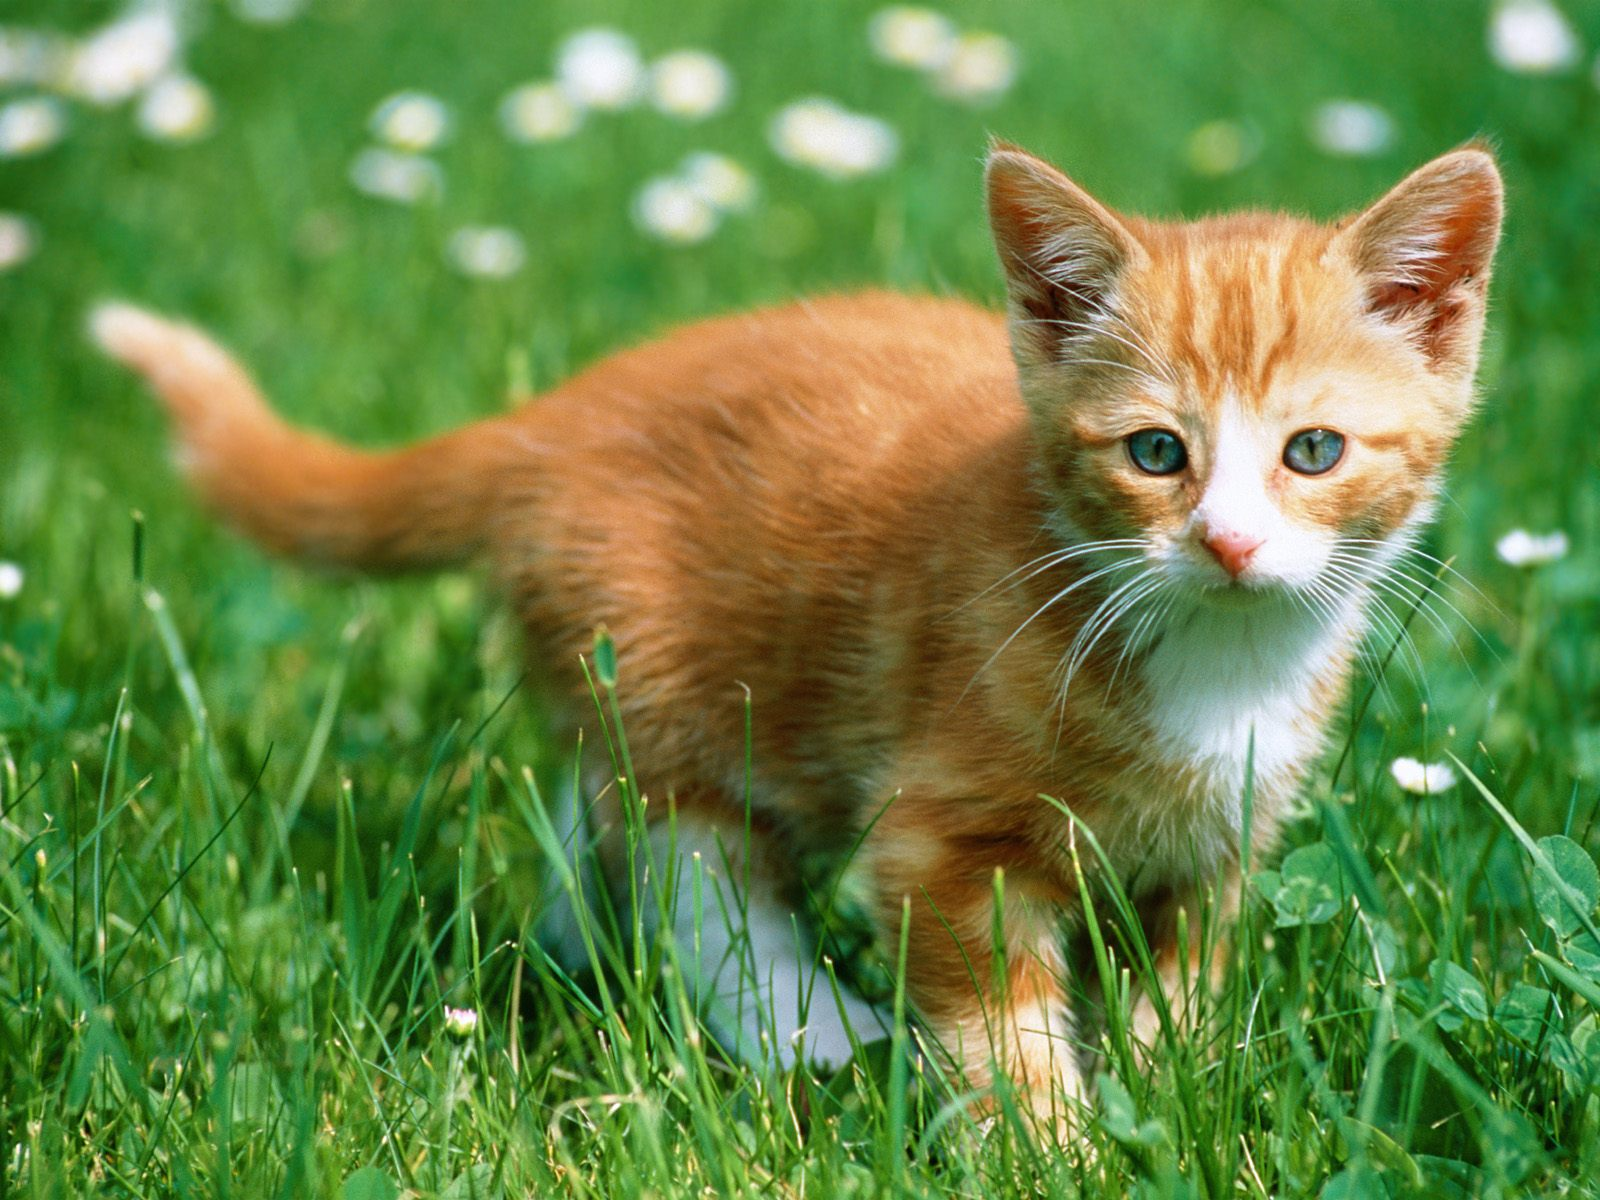 So small Red hat kitten Great wallpaper for cat lovers 1600x1200